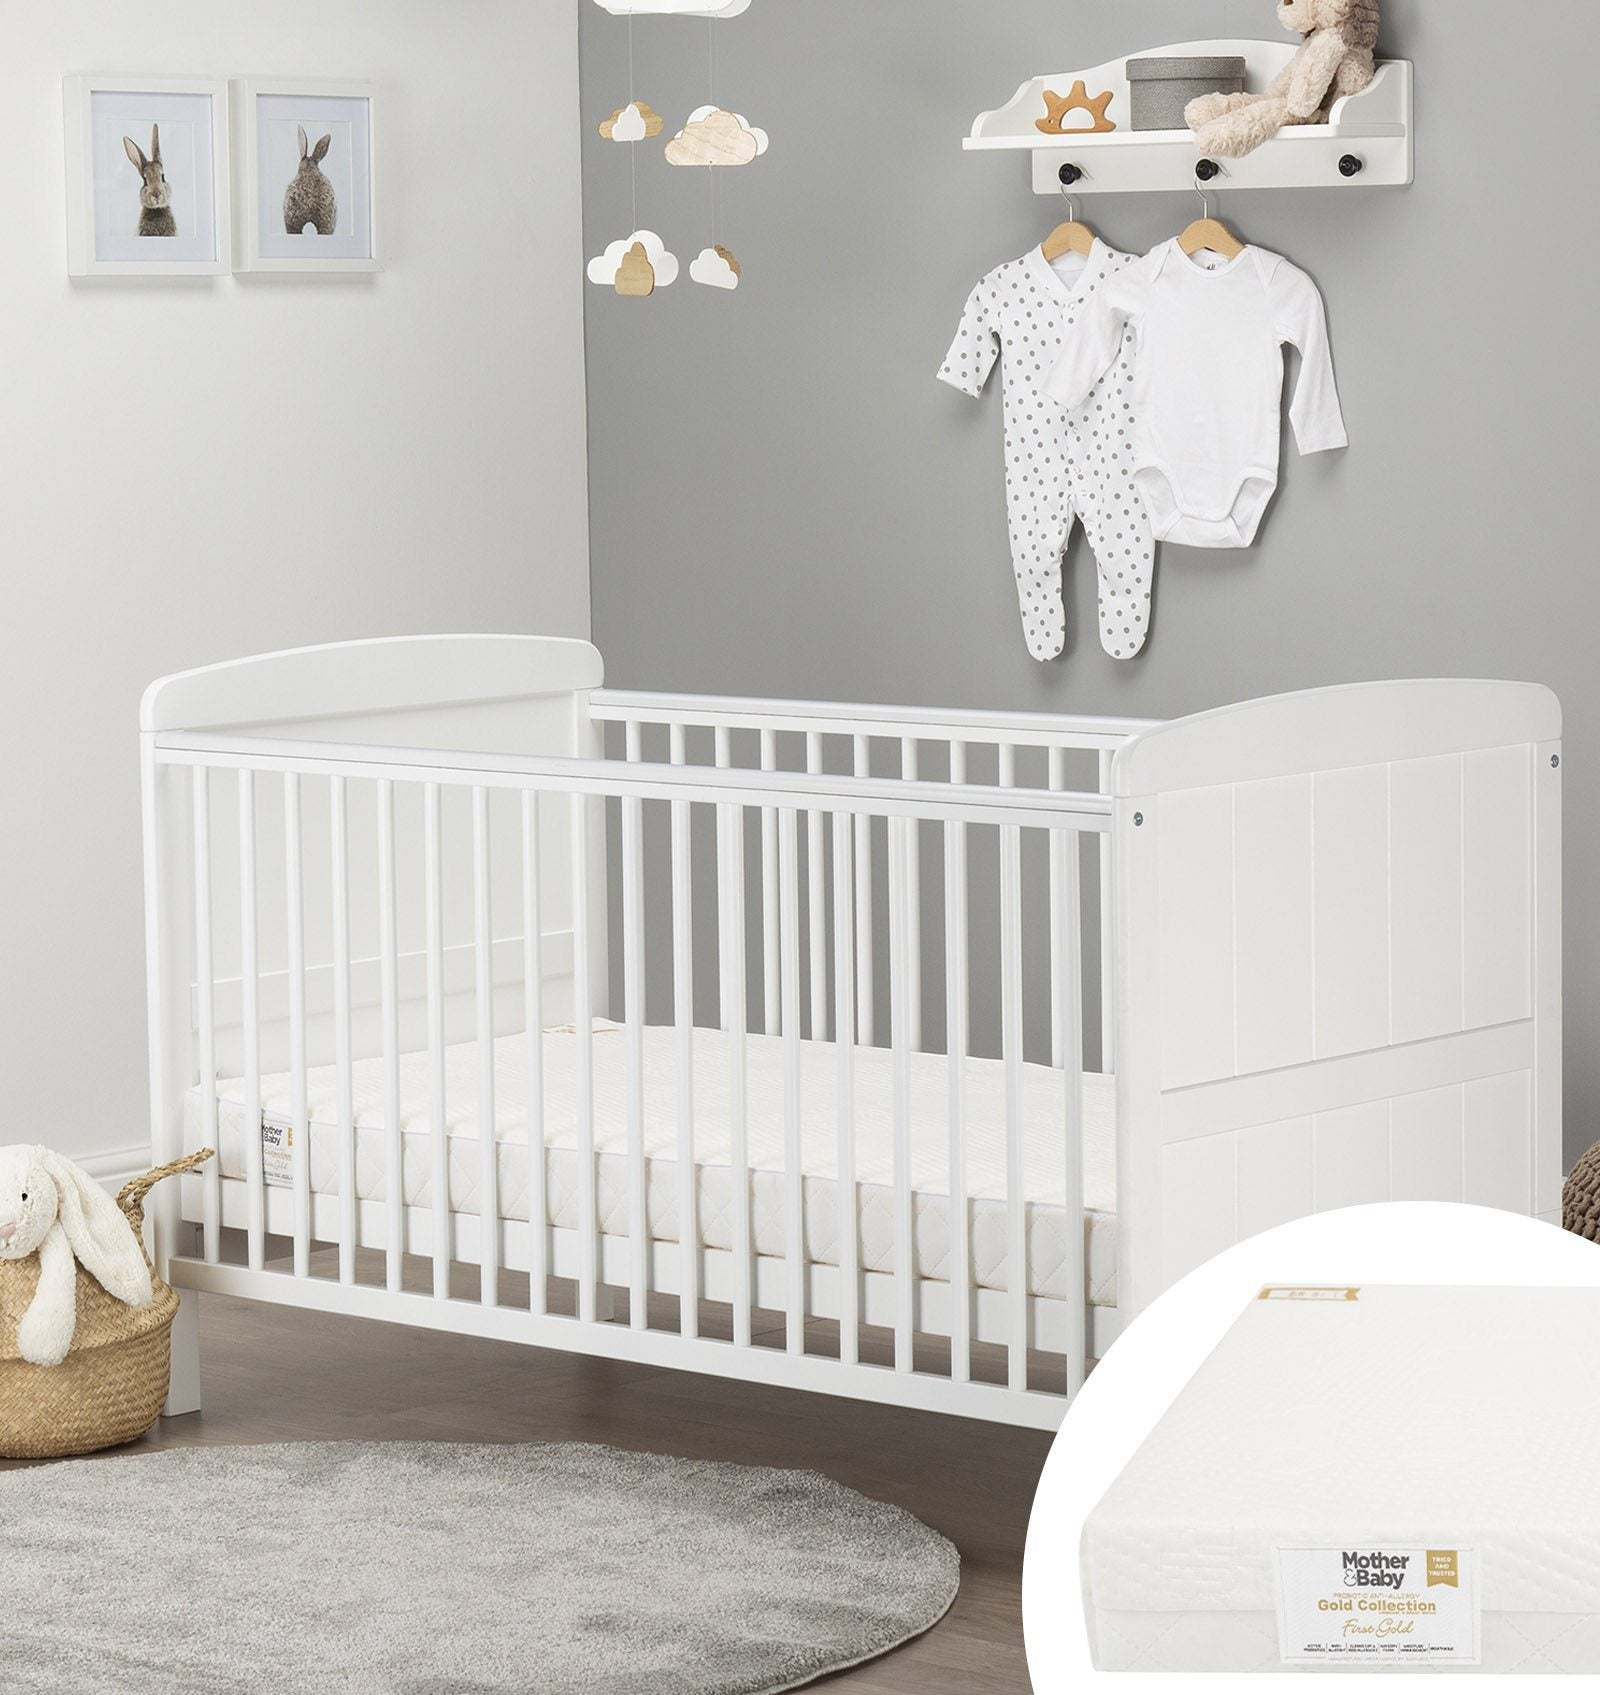 Juliet Cot Bed White + Mother&Baby First Gold Anti-Allergy Foam Cot bed Mattress Furniture CuddleCo